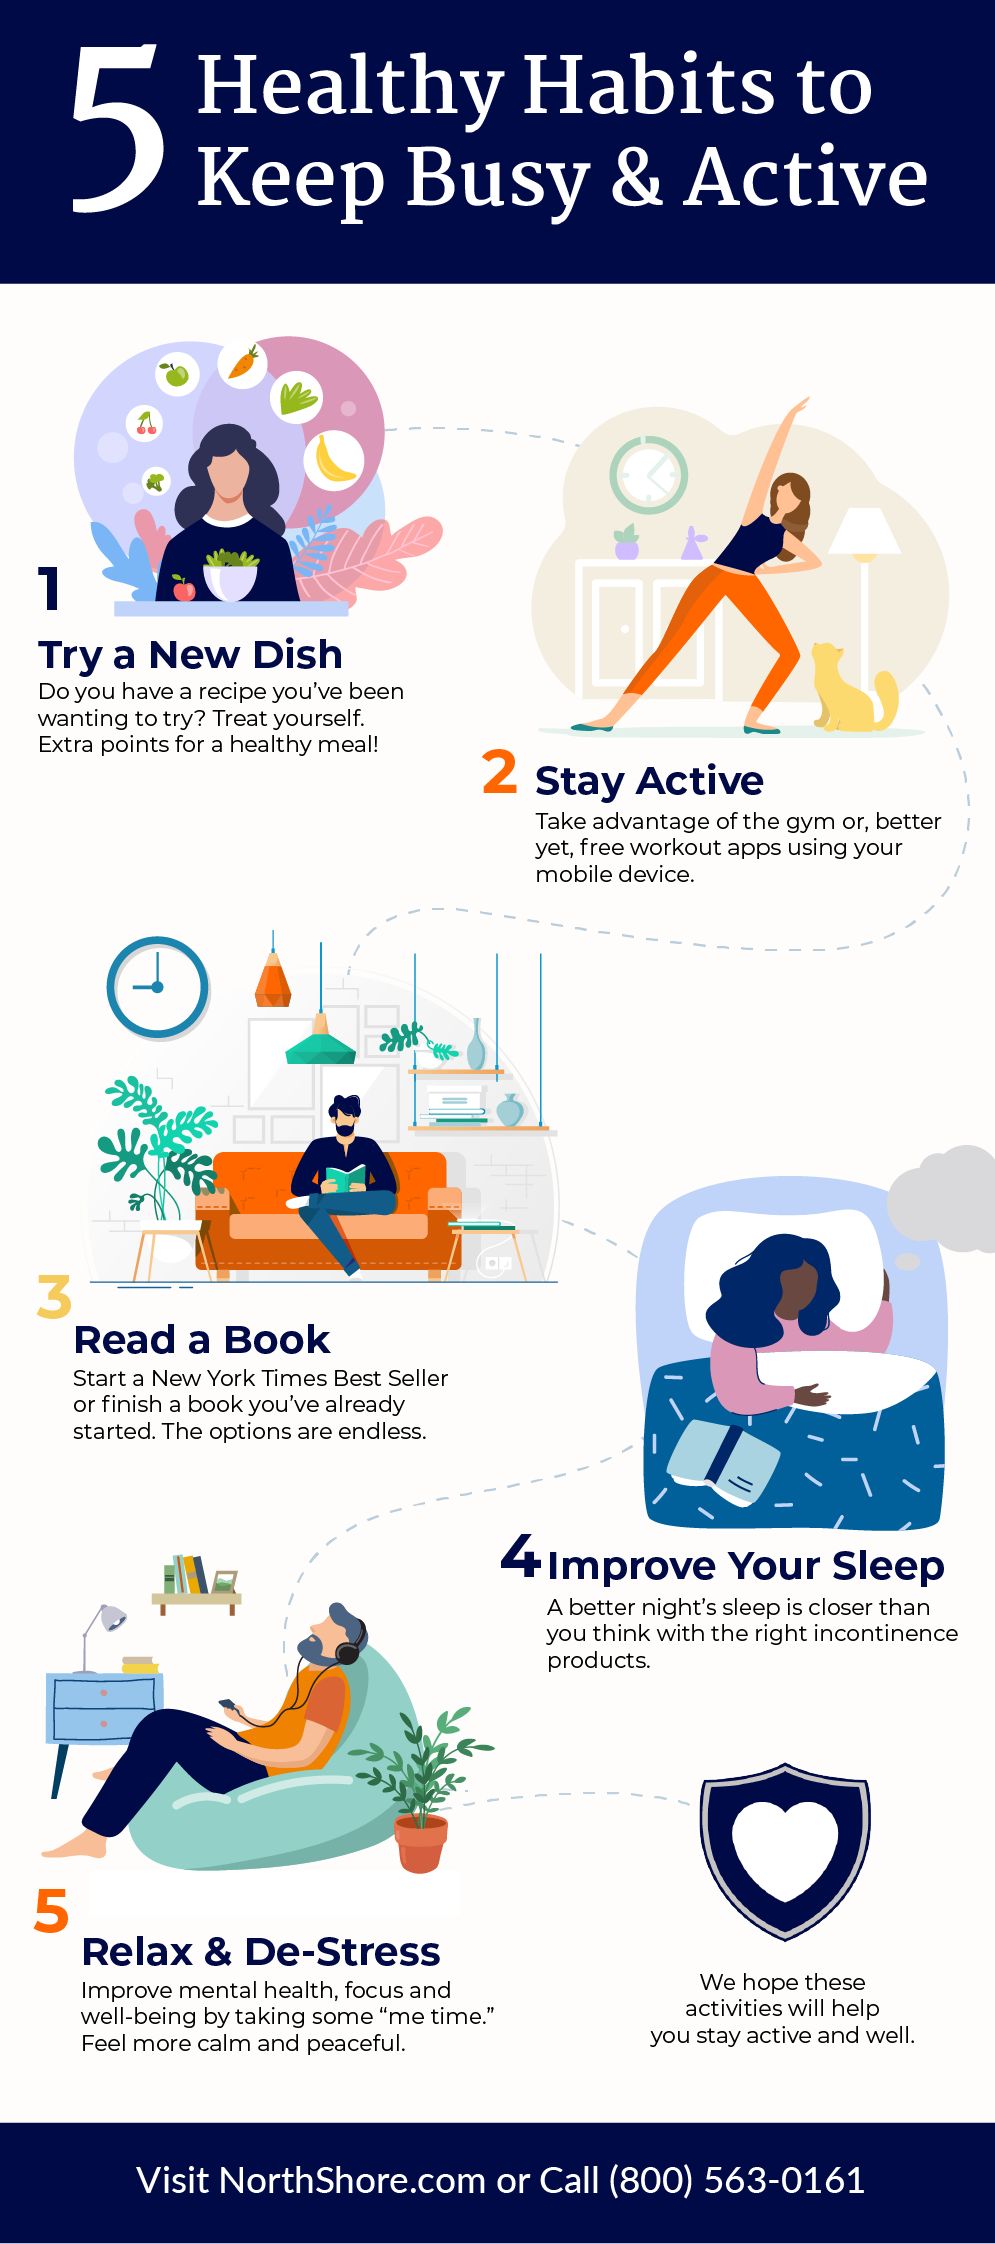 5 activities and HEALTHY HABITS INFOGRAPHIC.png